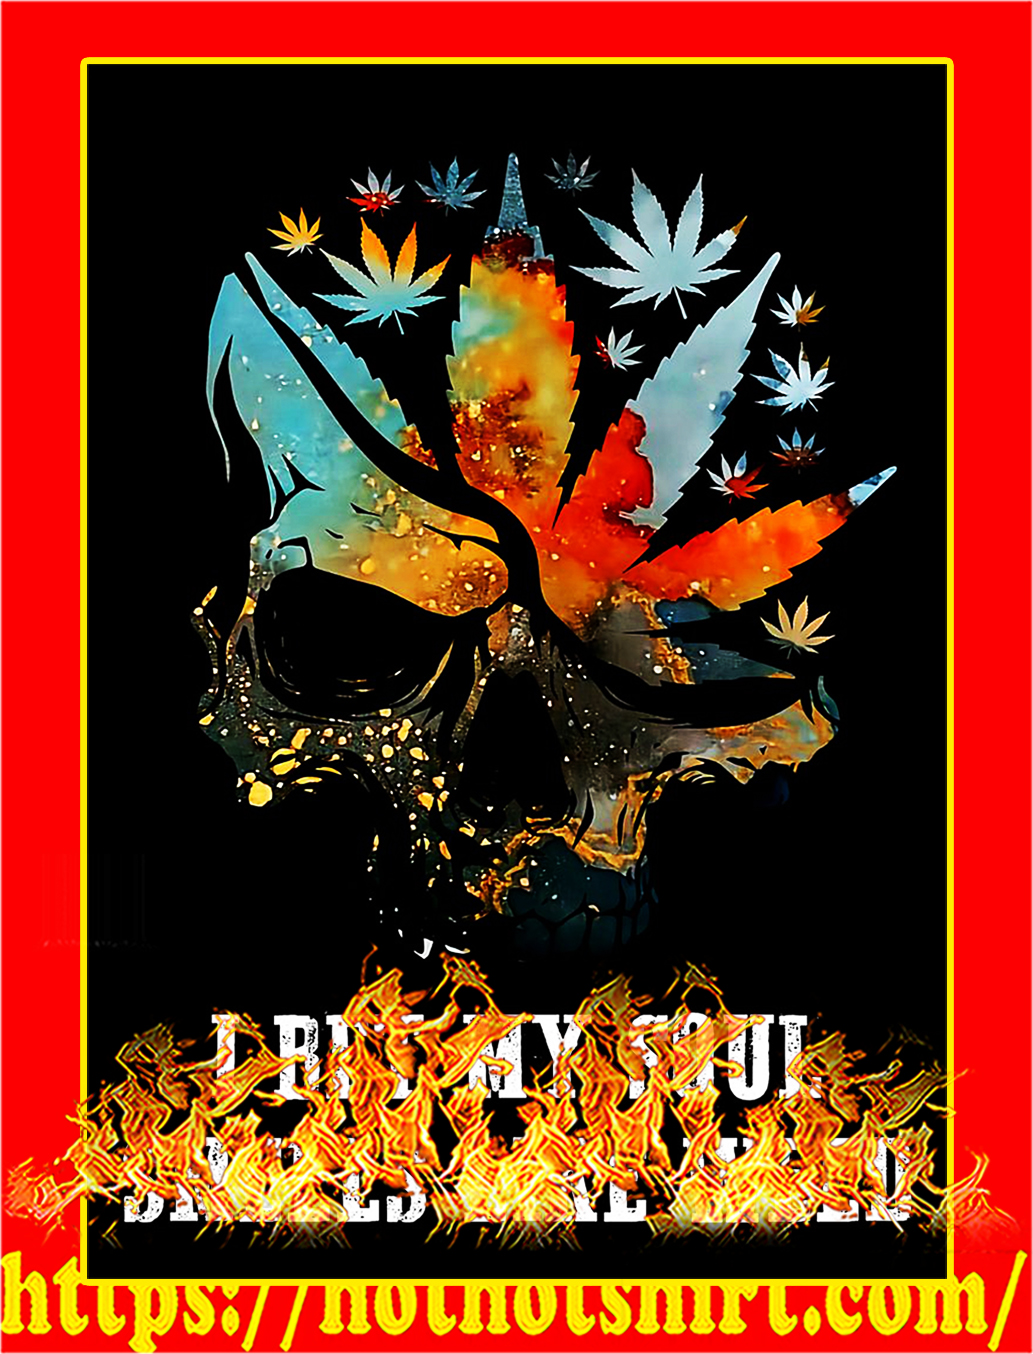 Skull I bet my soul smells like weed poster - A2